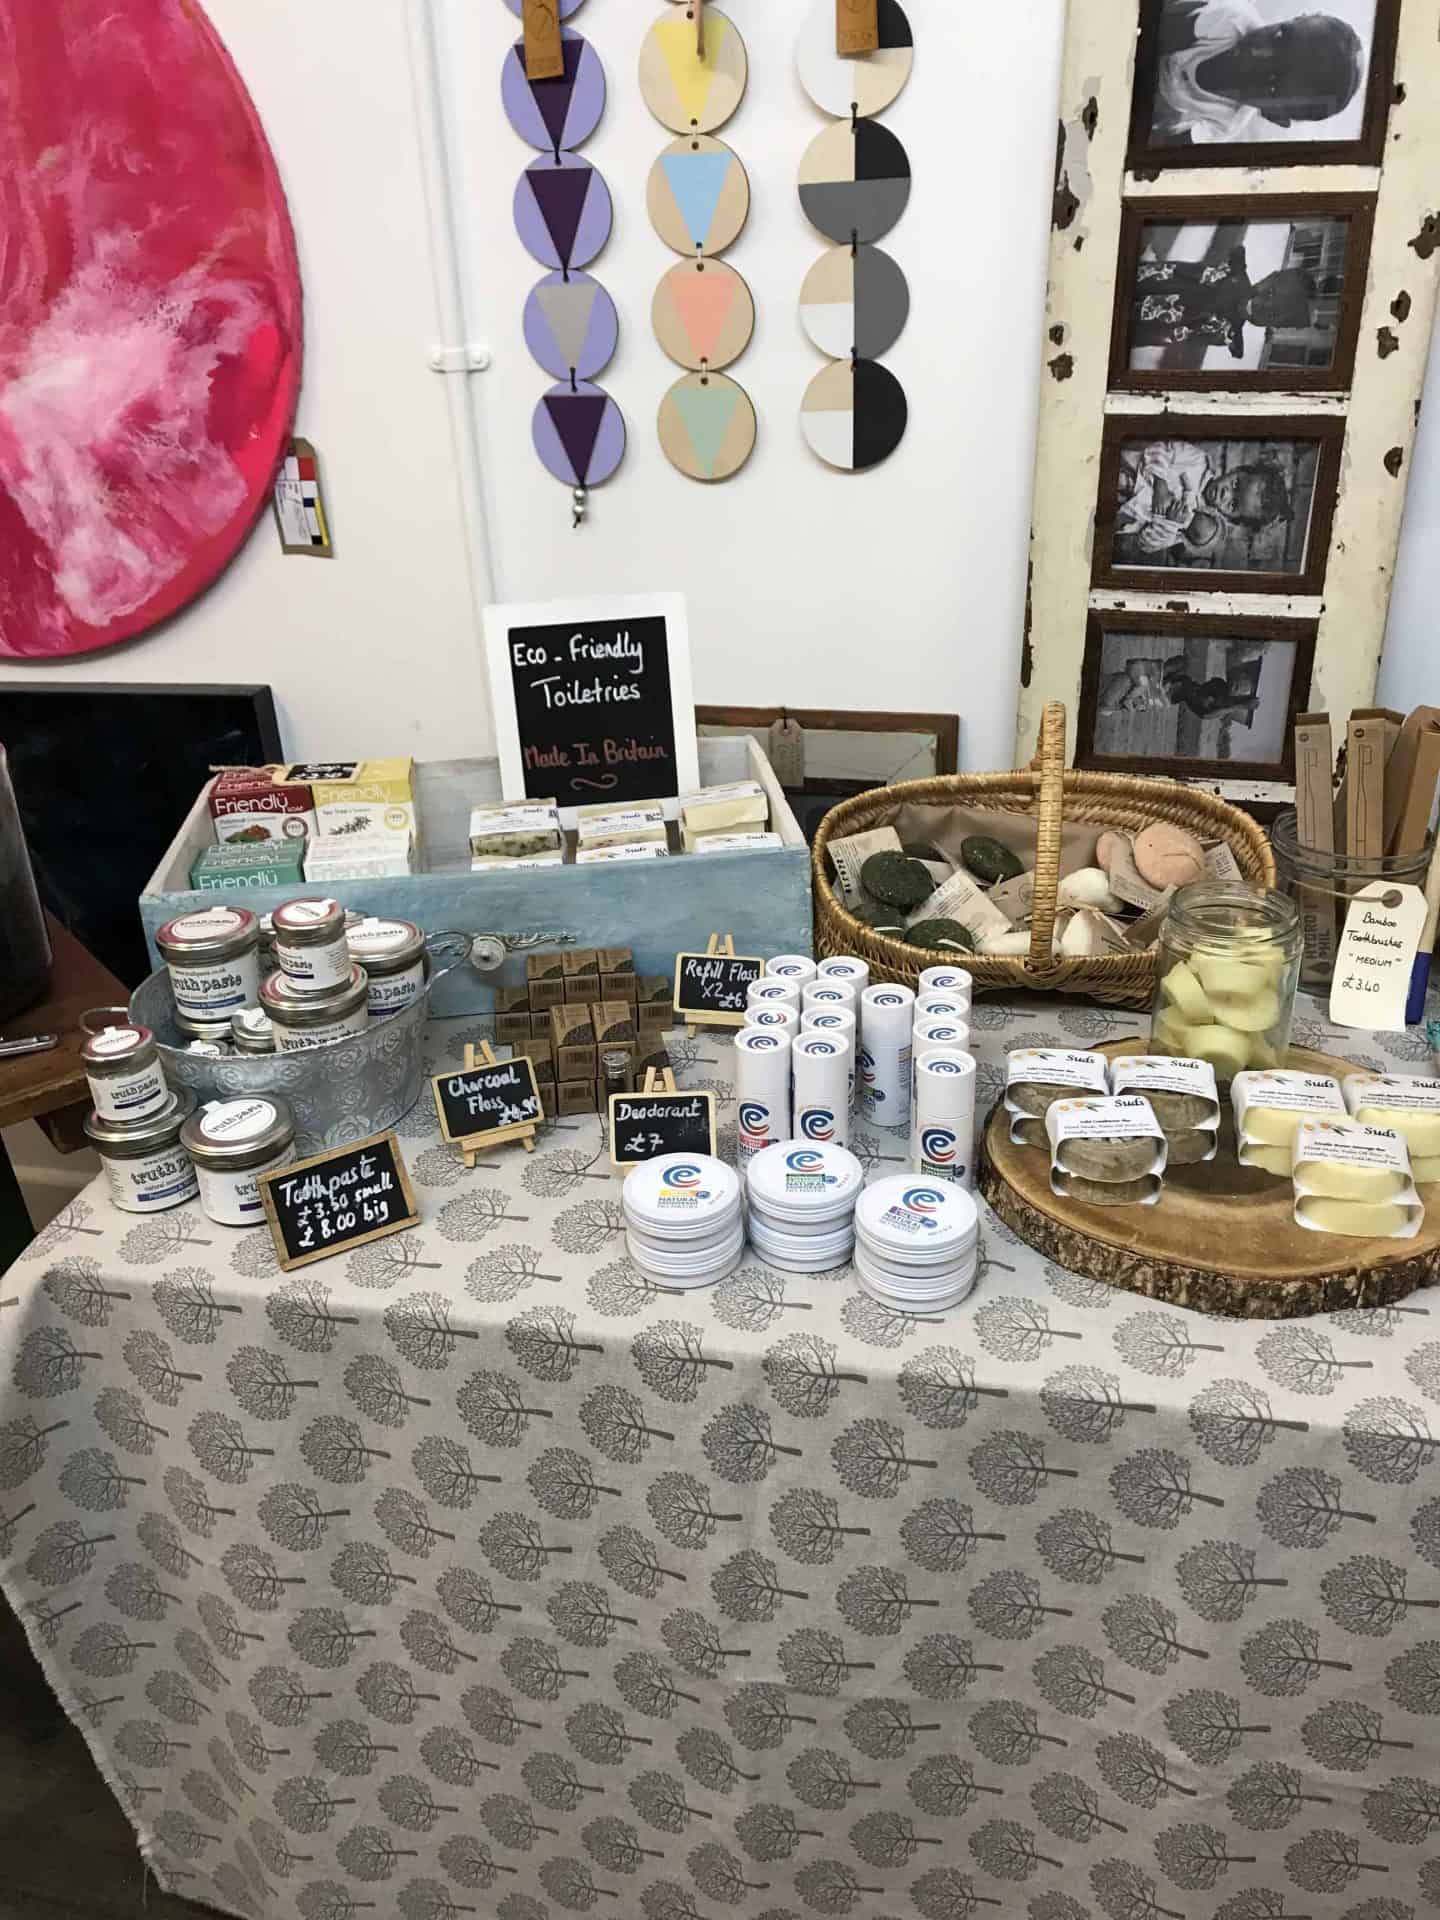 Zero waste shopping at Eco-friendly toiletries at the My Refill Market sustainable stores pop up at On The HIgh Street in Stony Stratford